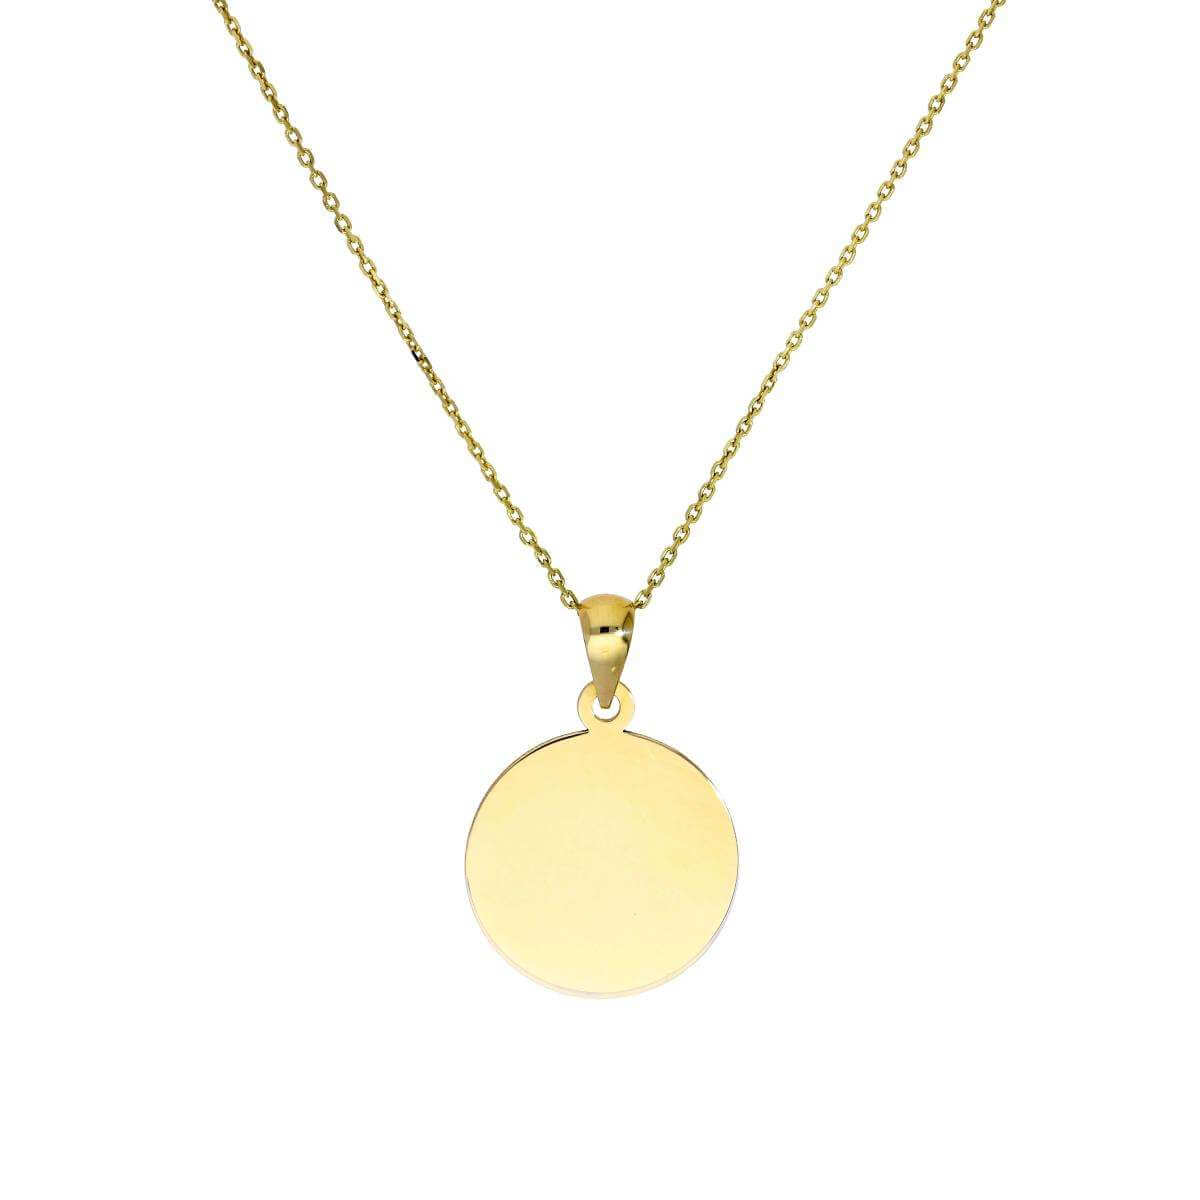 9ct Gold Round Engravable Tag Pendant Necklace 16 - 20 Inches